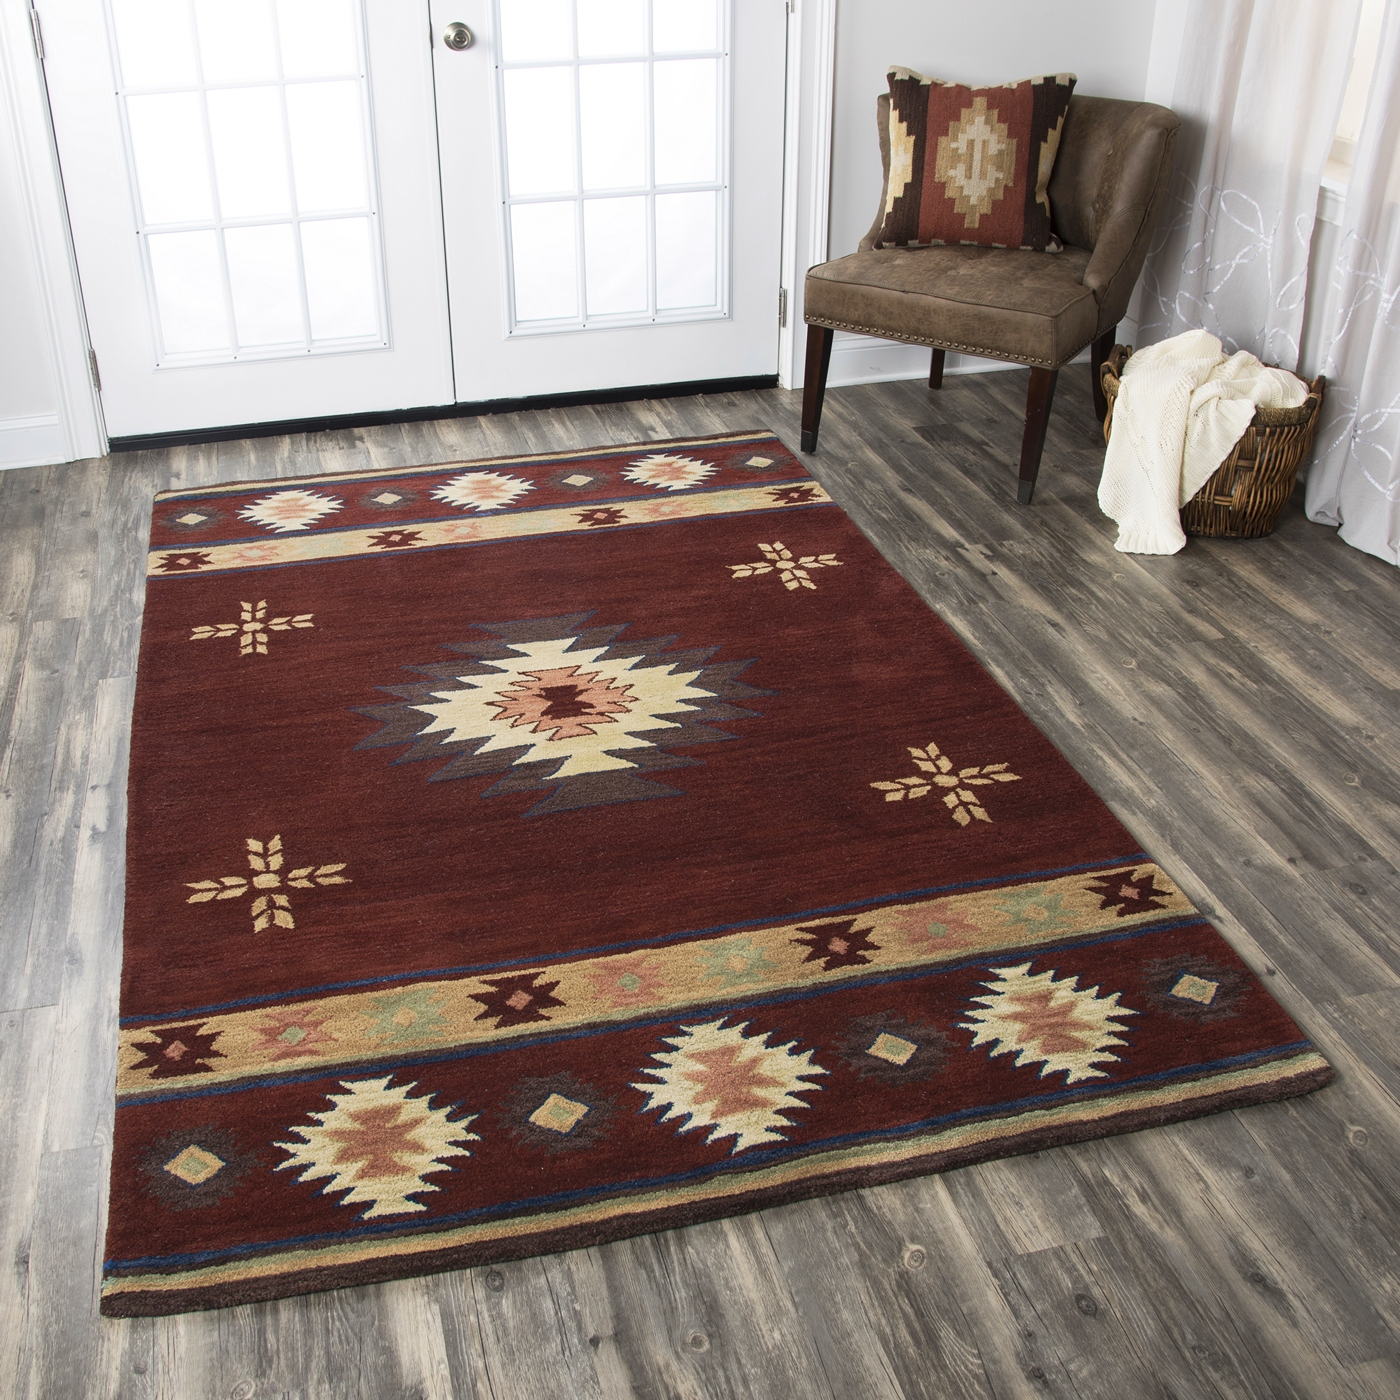 Tribal Rug Nz: Southwest Indian Pattern Wool Area Rug In Red Tan Sage